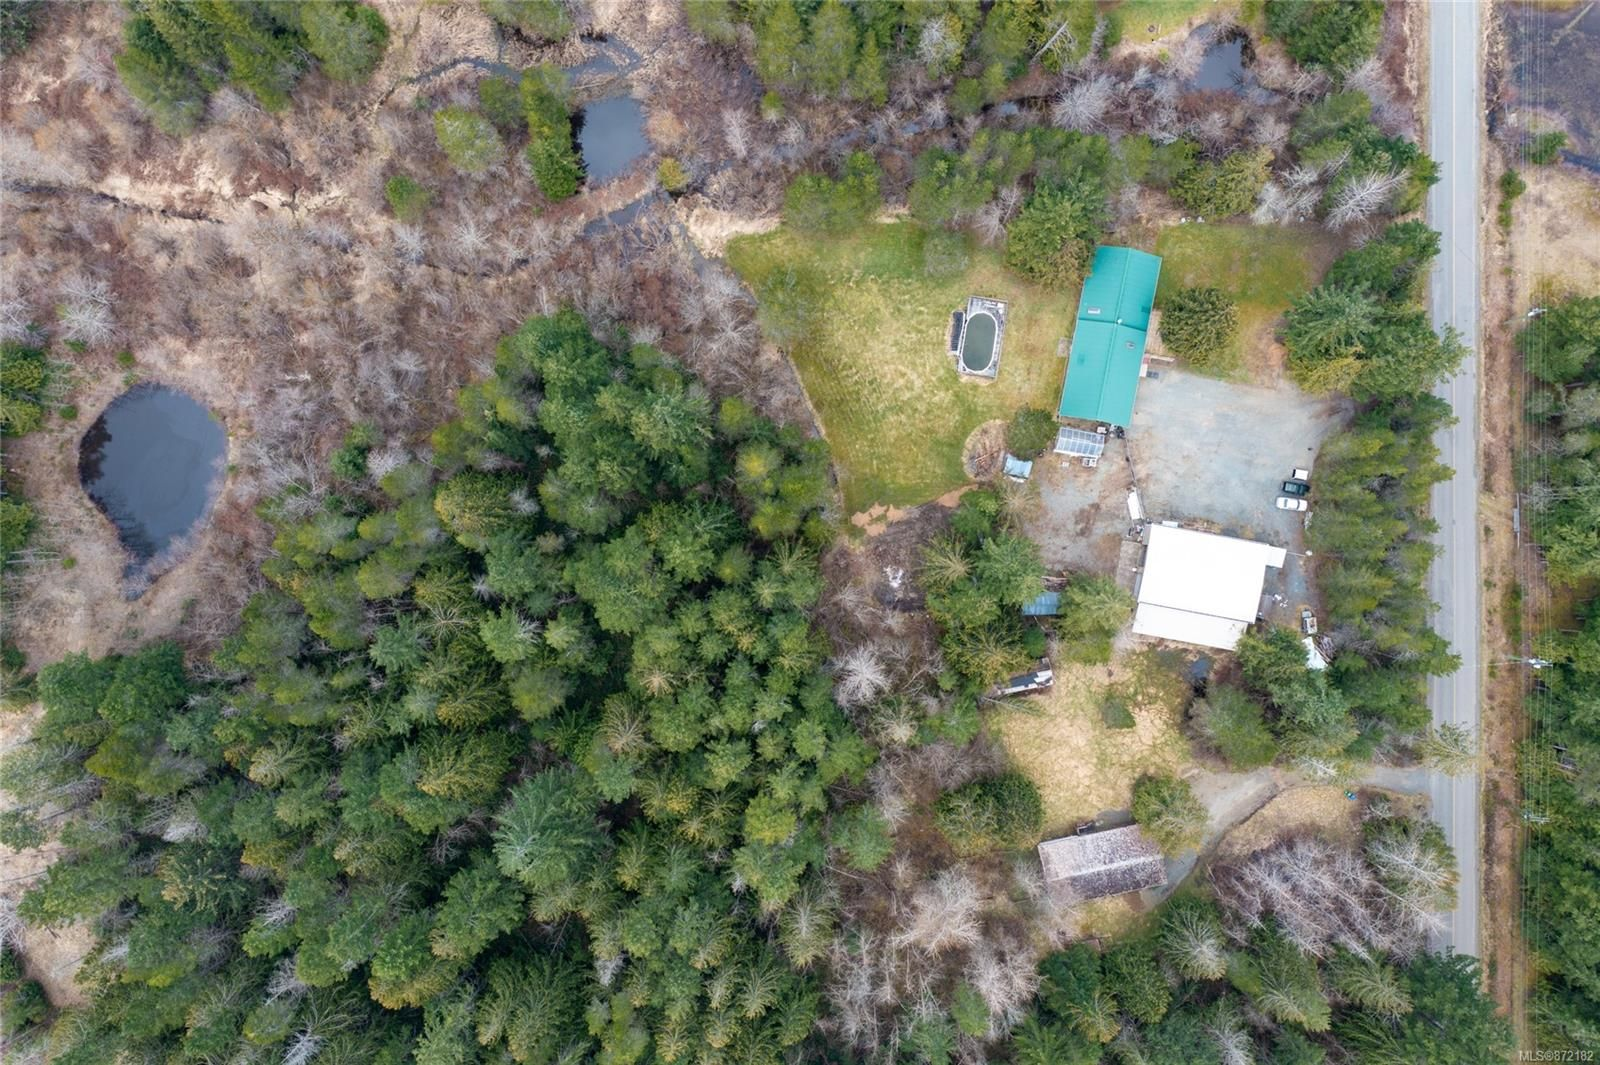 Main Photo: 1367 Station Rd in : PQ Errington/Coombs/Hilliers House for sale (Parksville/Qualicum)  : MLS®# 872182